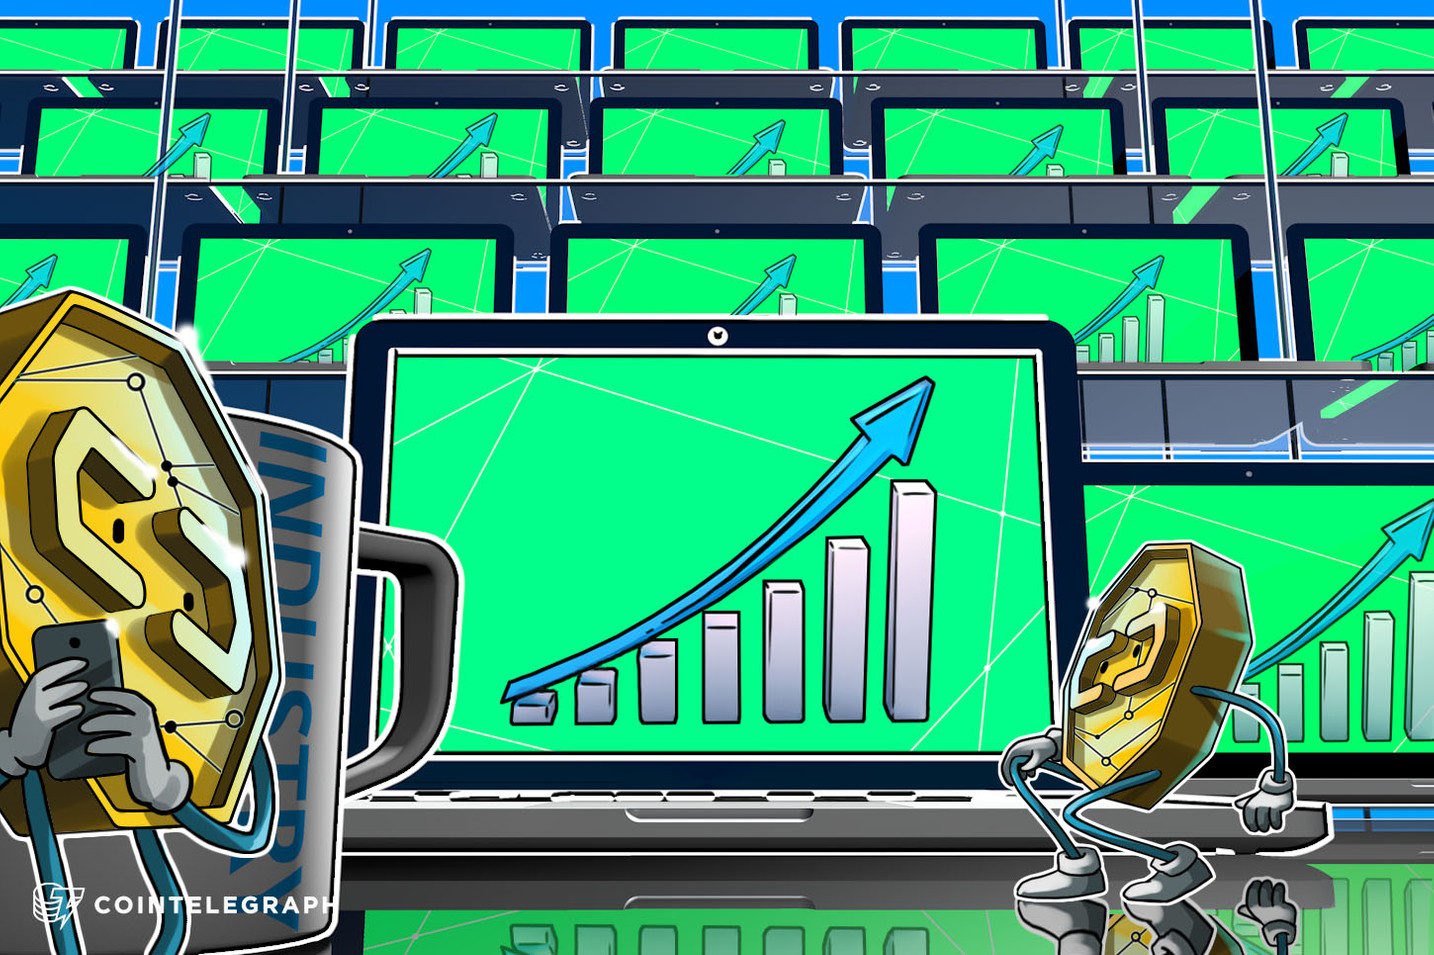 Bitcoin Breaks $6,500 as Cryptocurrency Market Upswing Continues